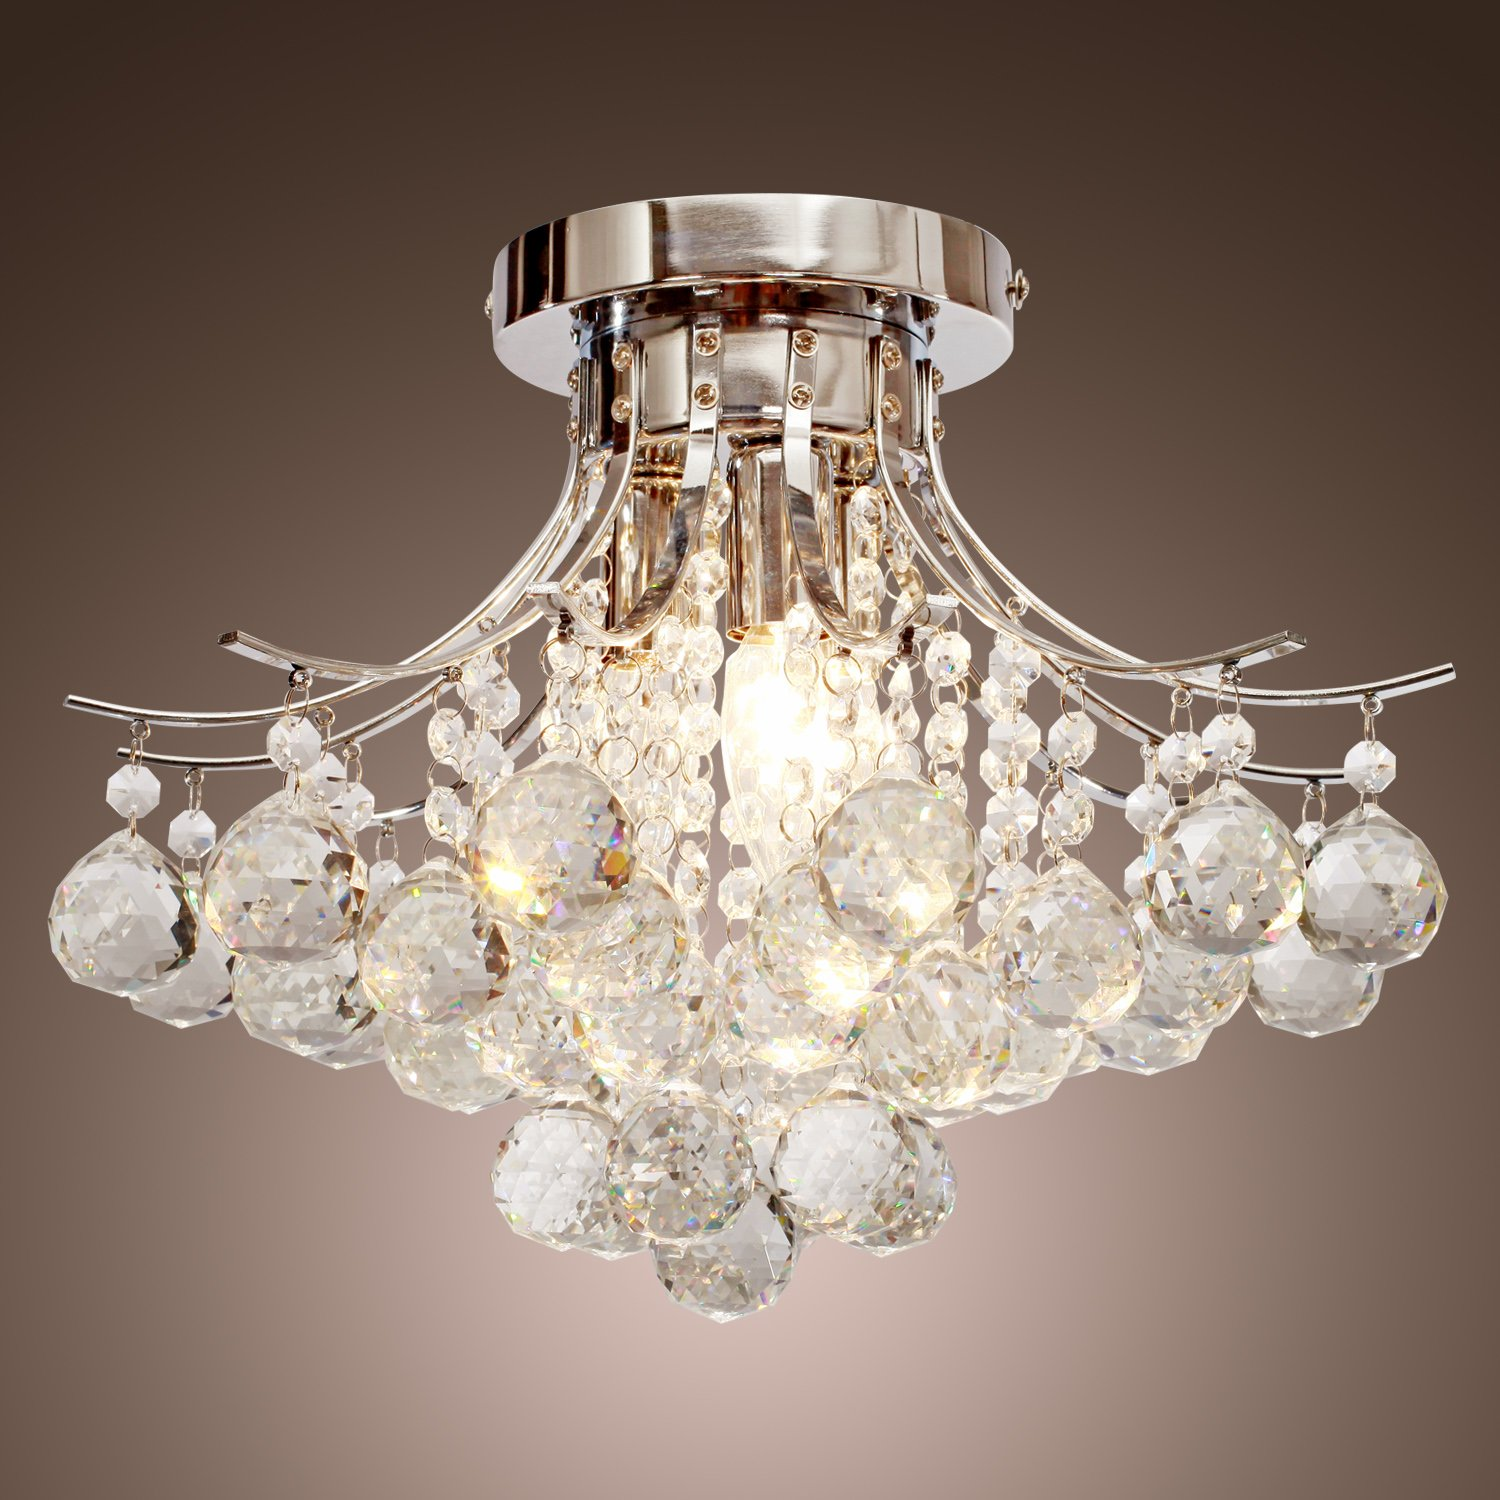 Lightinthebox 00218363 chrome finish crystal chandelier with 3 lightinthebox 00218363 chrome finish crystal chandelier with 3 lights amazon arubaitofo Image collections